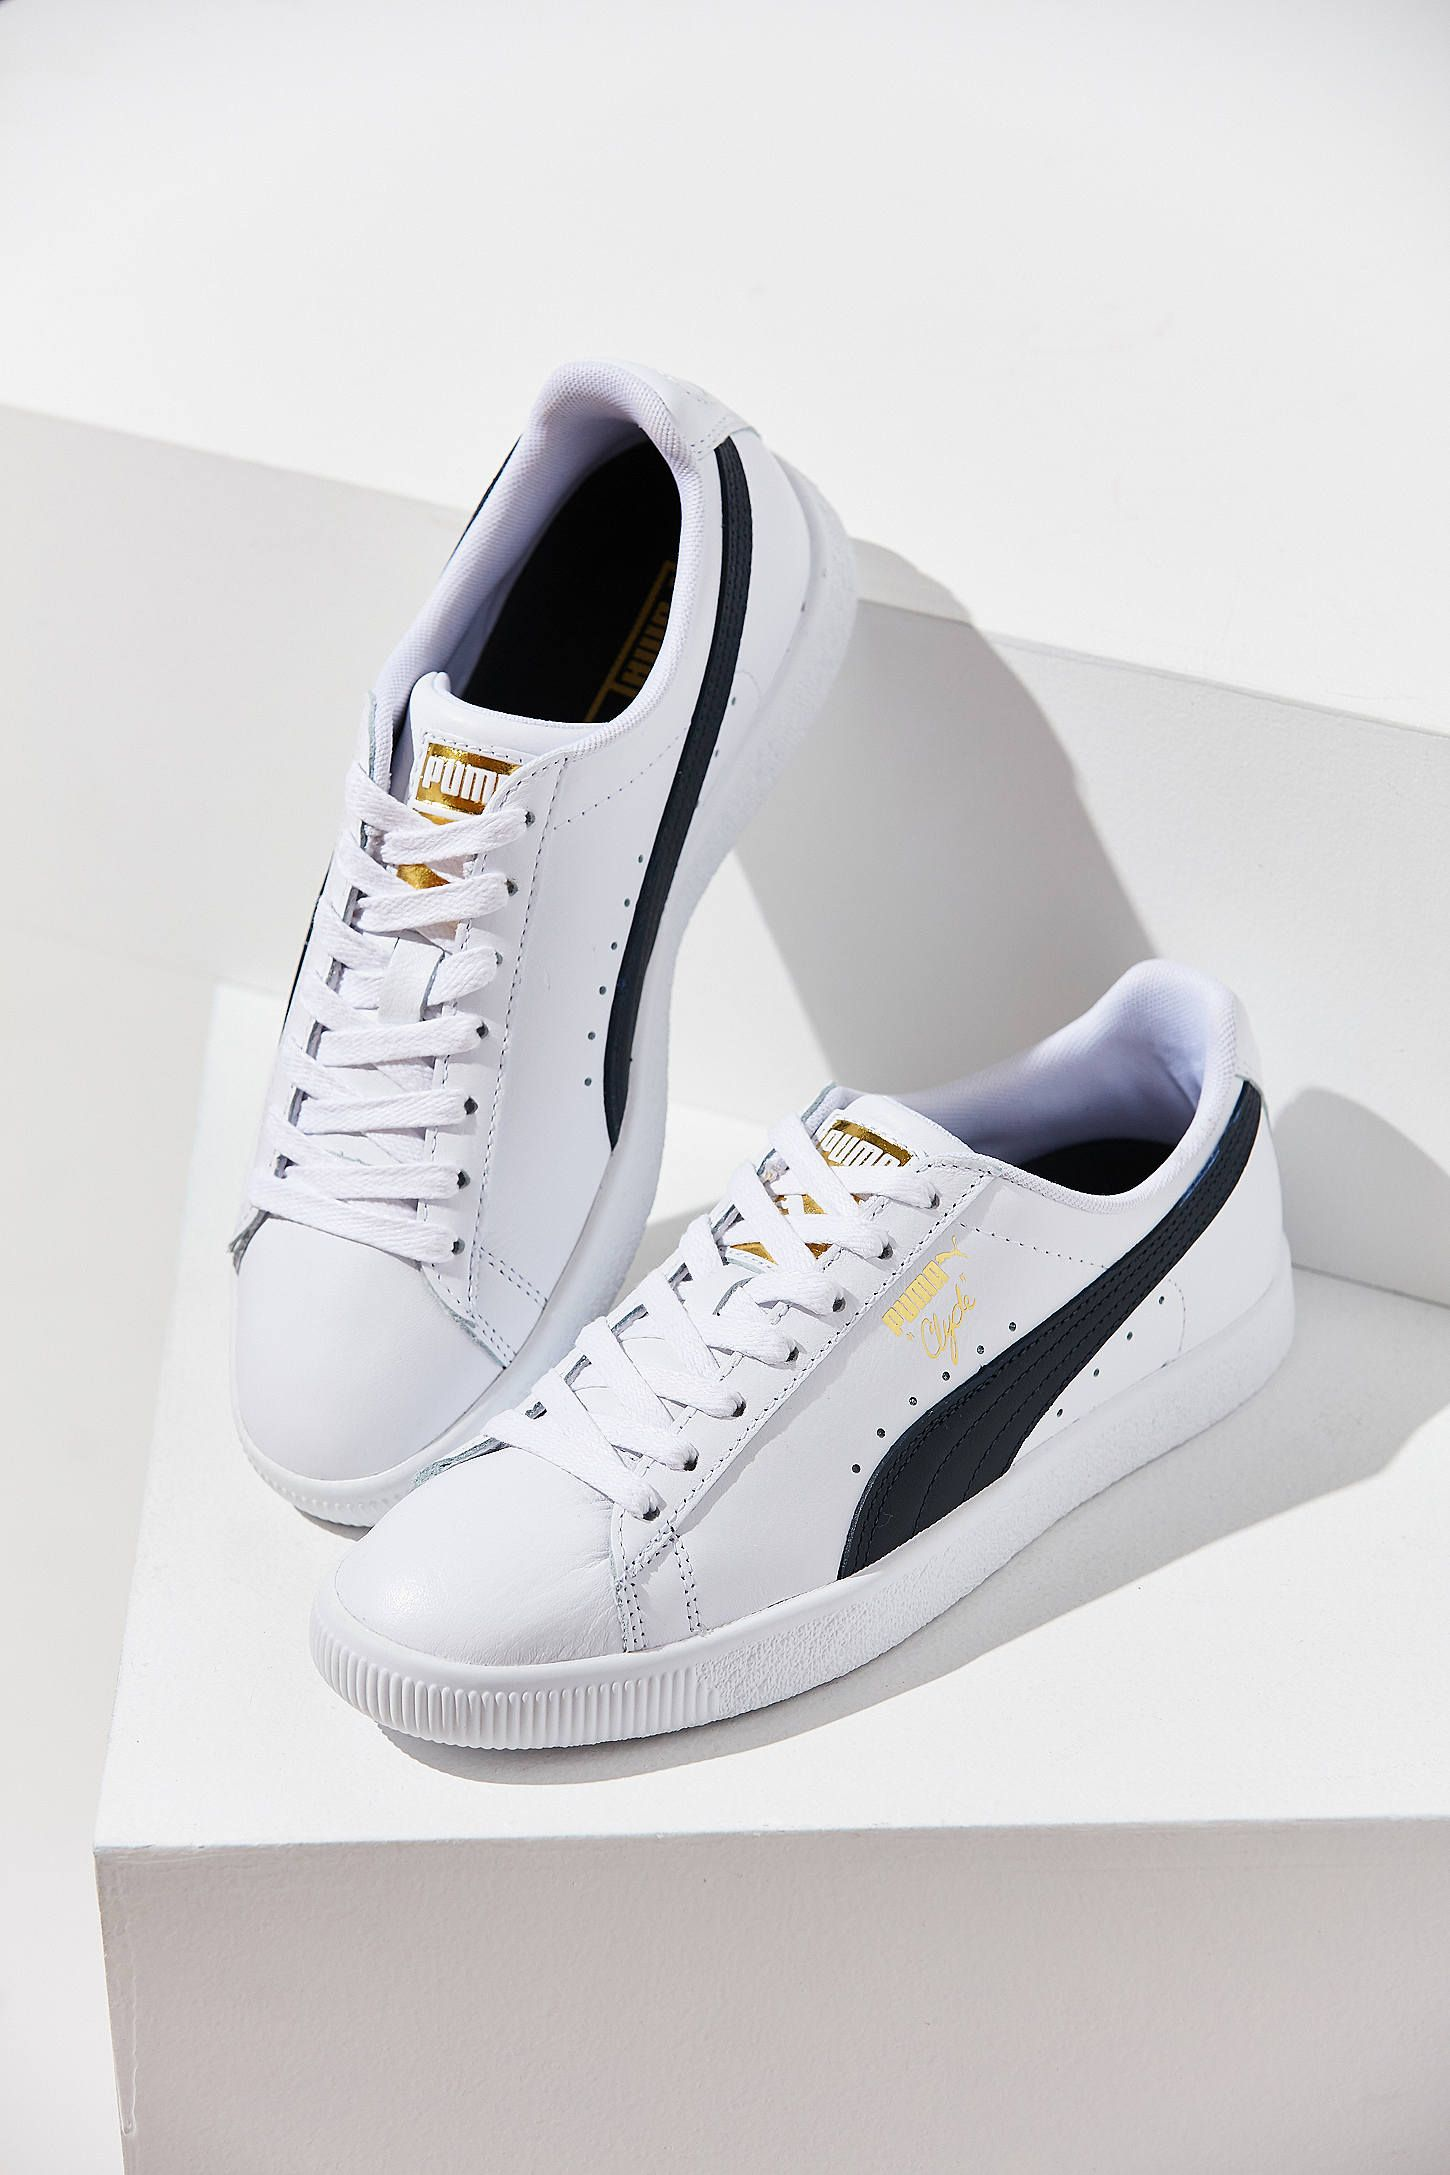 8f72cfd4c69e48 Slide View: 1: Puma Clyde Core Foil Sneaker | shoes in 2019 ...